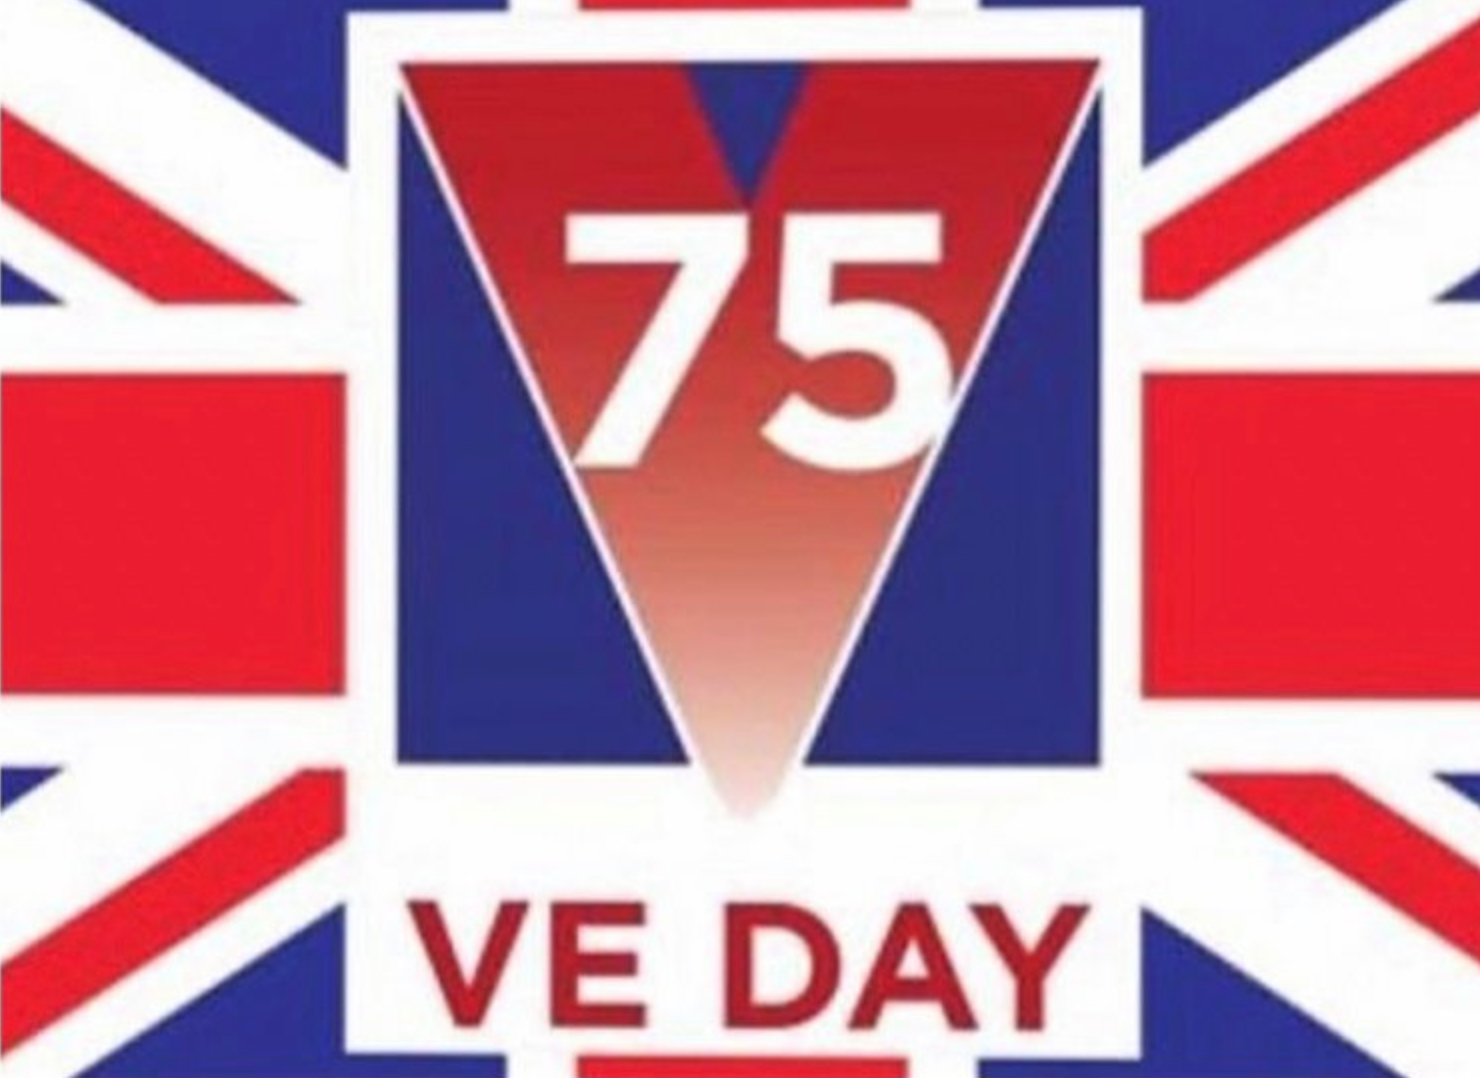 VE Day 75: The People's Celebration